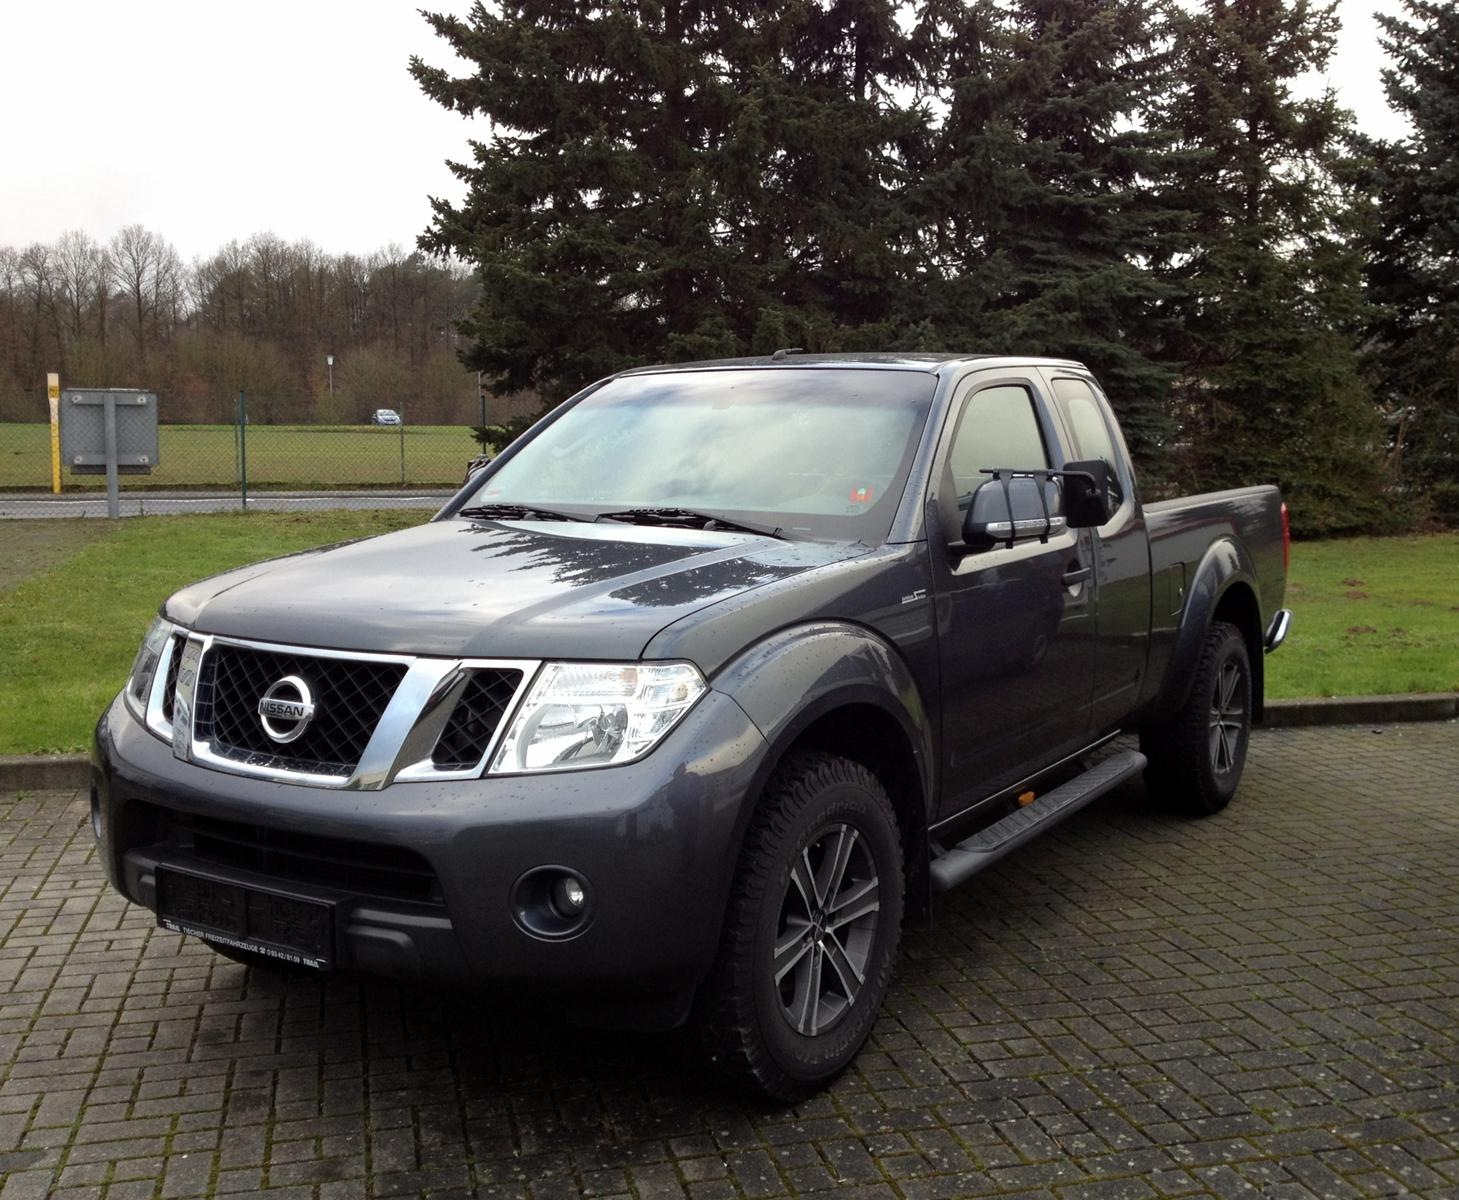 nissan navara king cab 4 4 se oscarlotta on tour. Black Bedroom Furniture Sets. Home Design Ideas